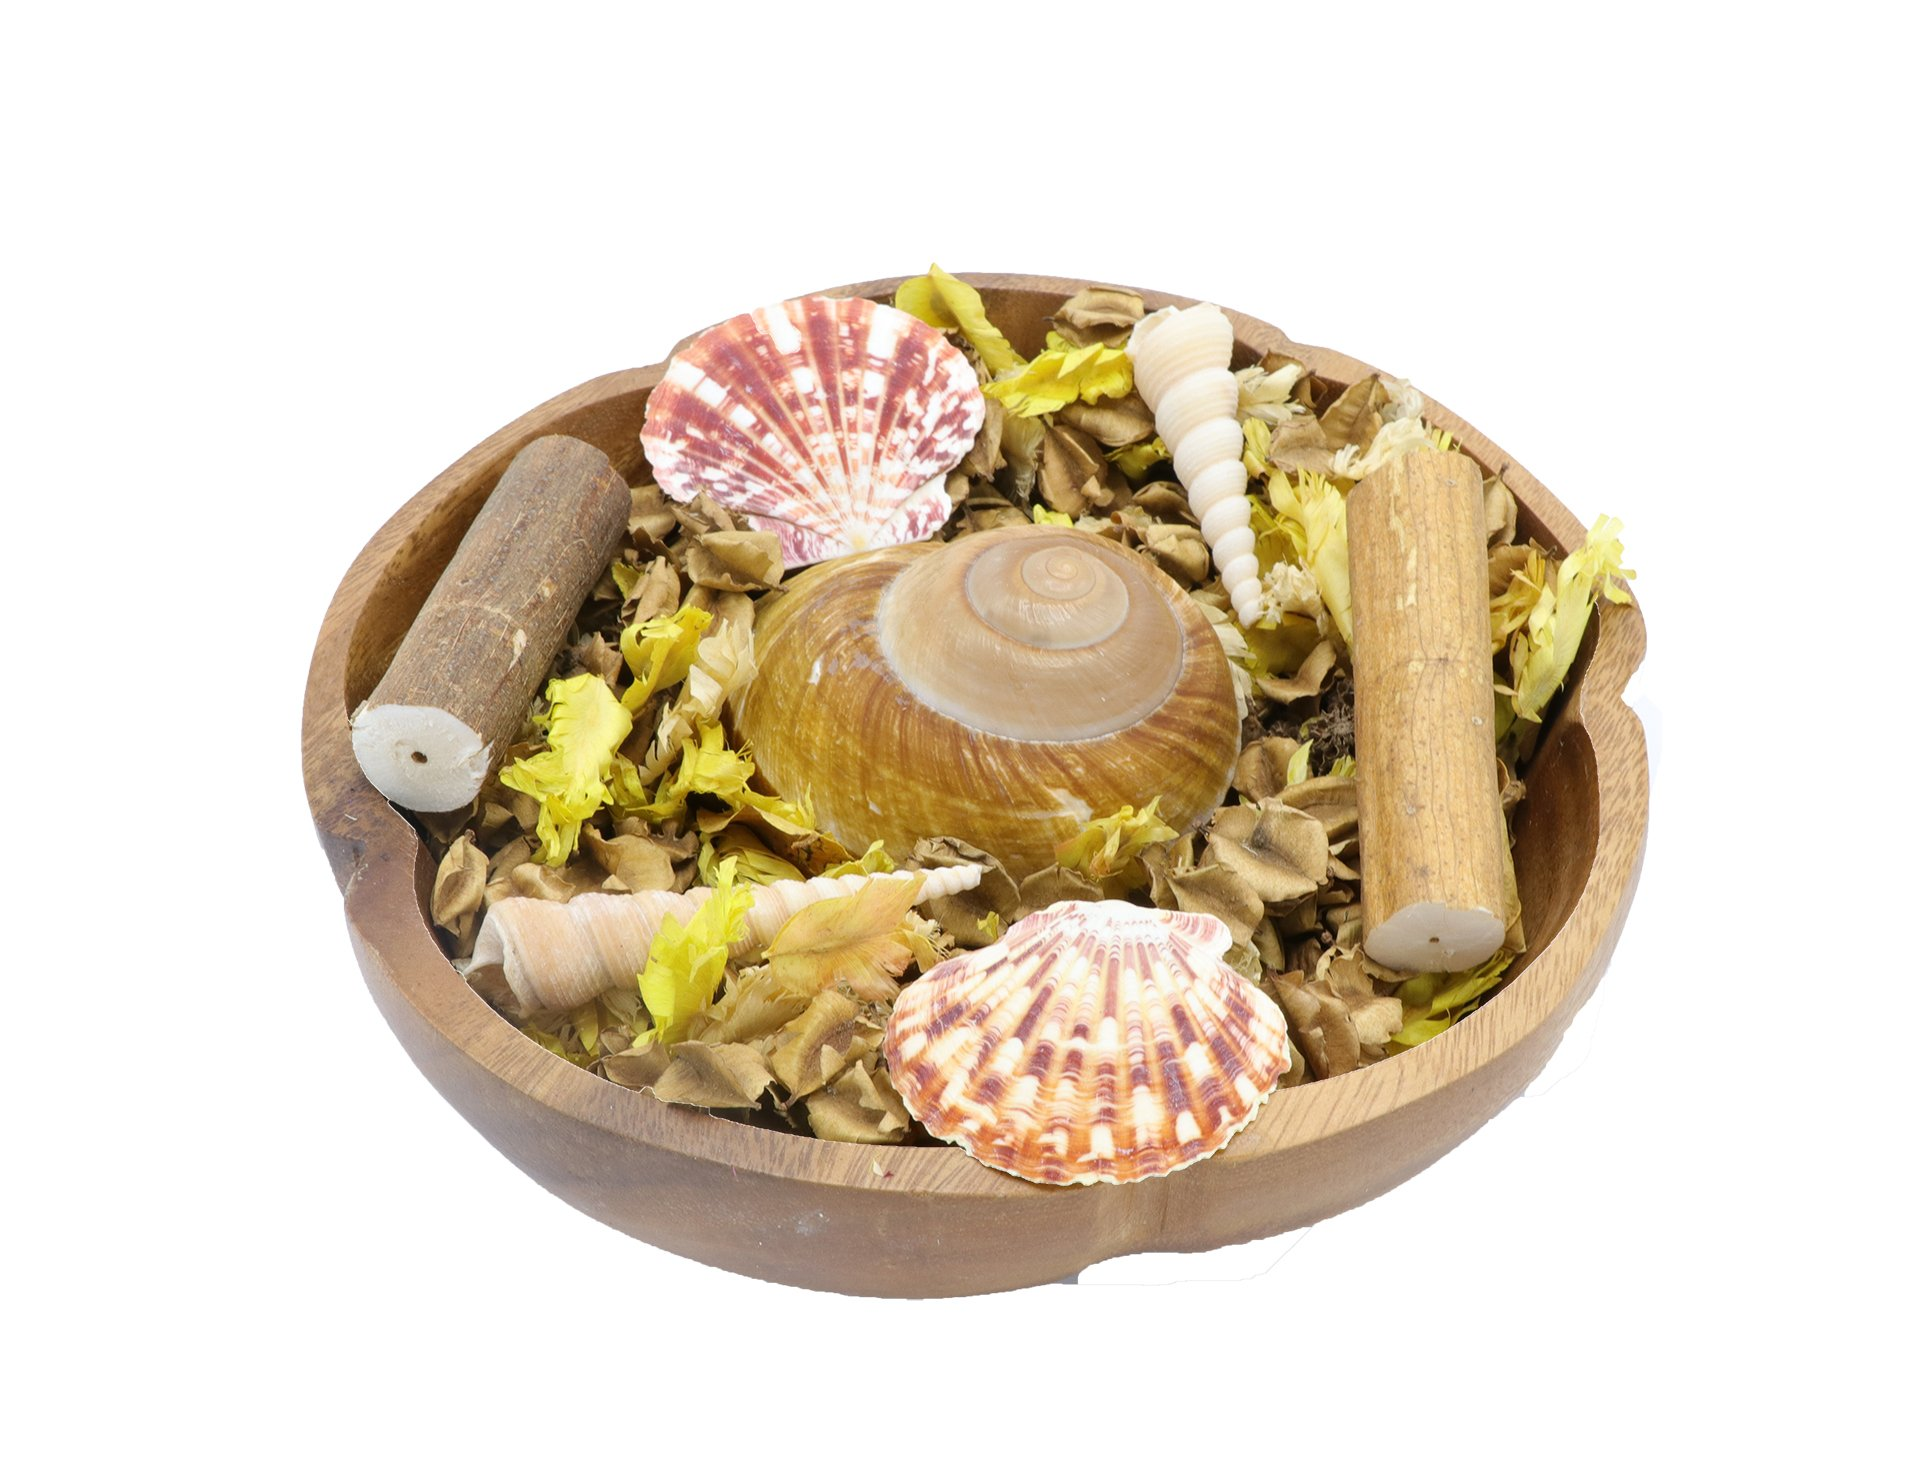 The Ambient Collection Decorative Scented Potpourri with Shells by The Ambient Collection